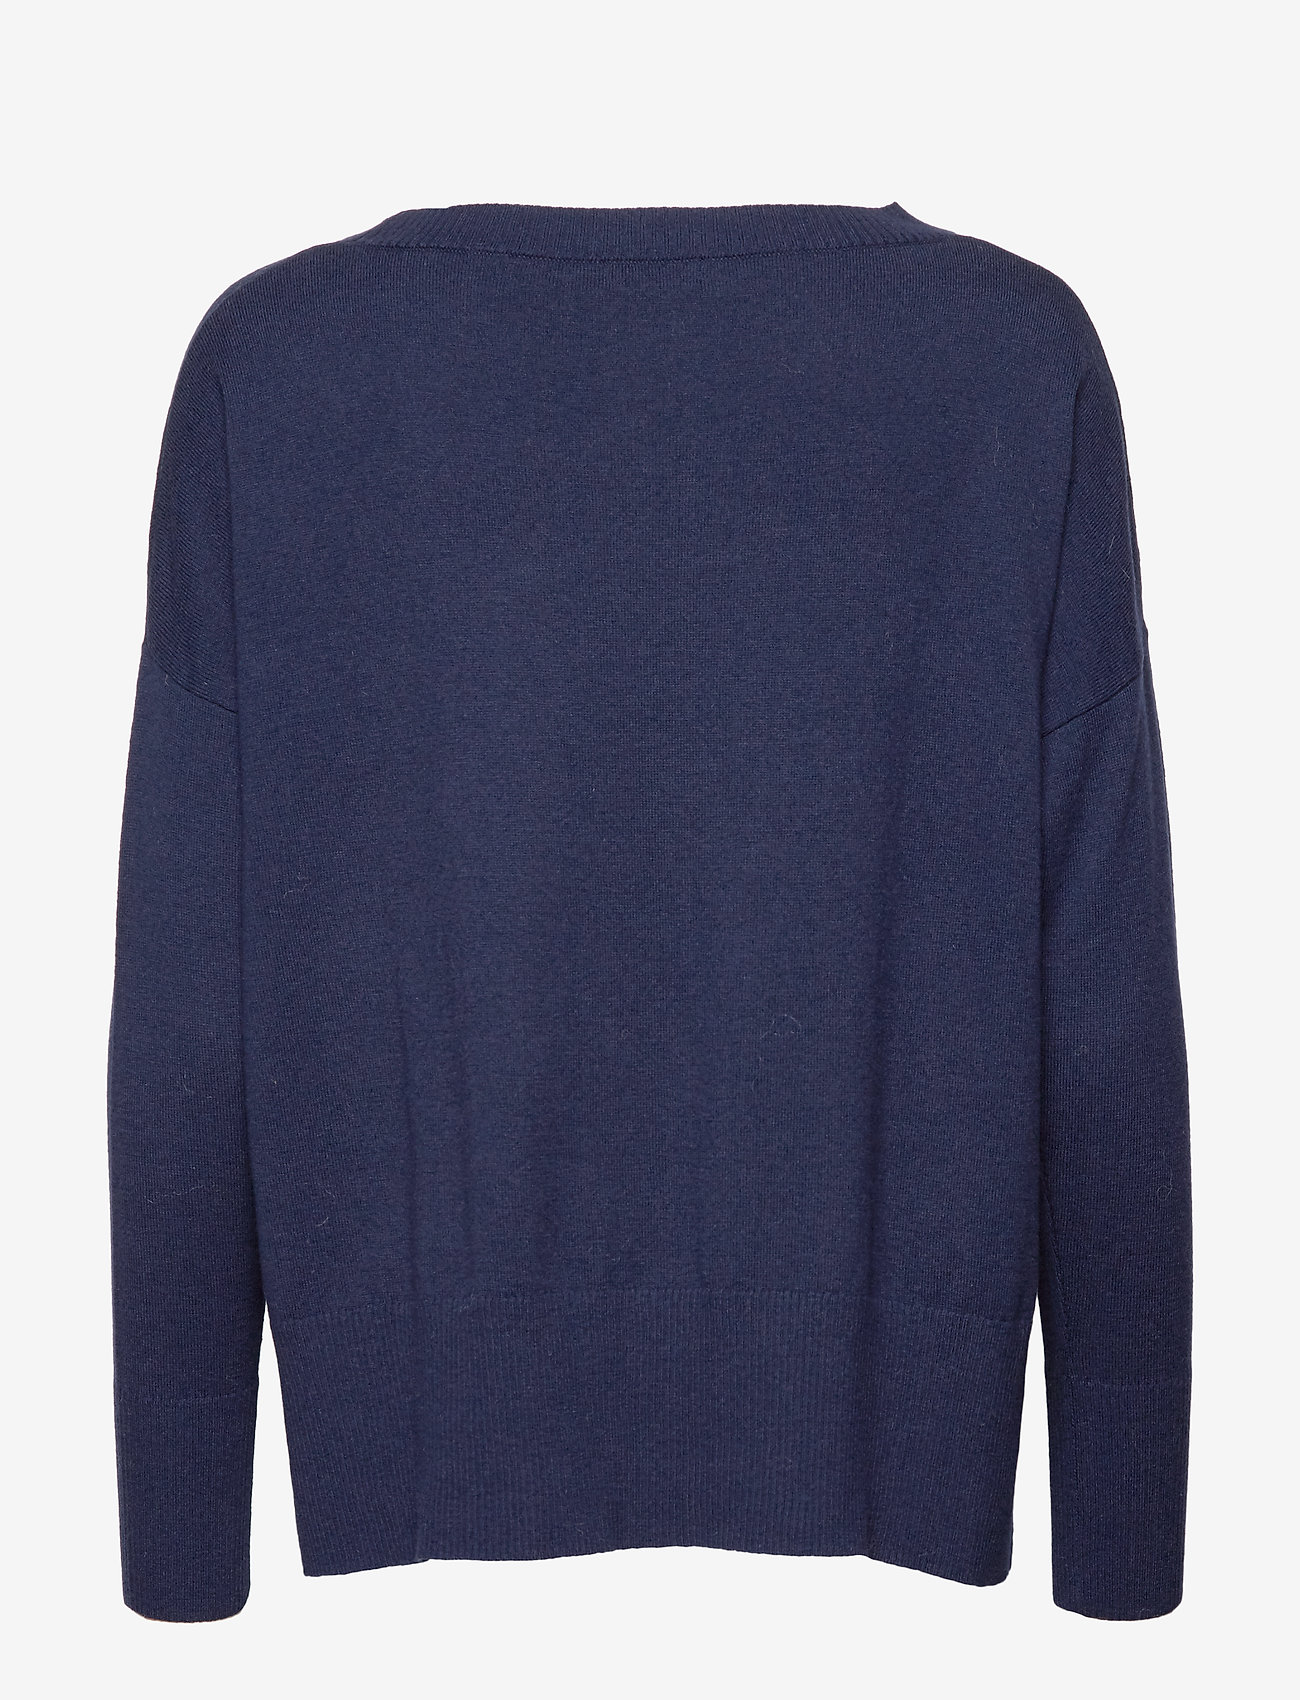 Nanso - Ladies knit sweater, Villis - neulepuserot - dark blue - 1